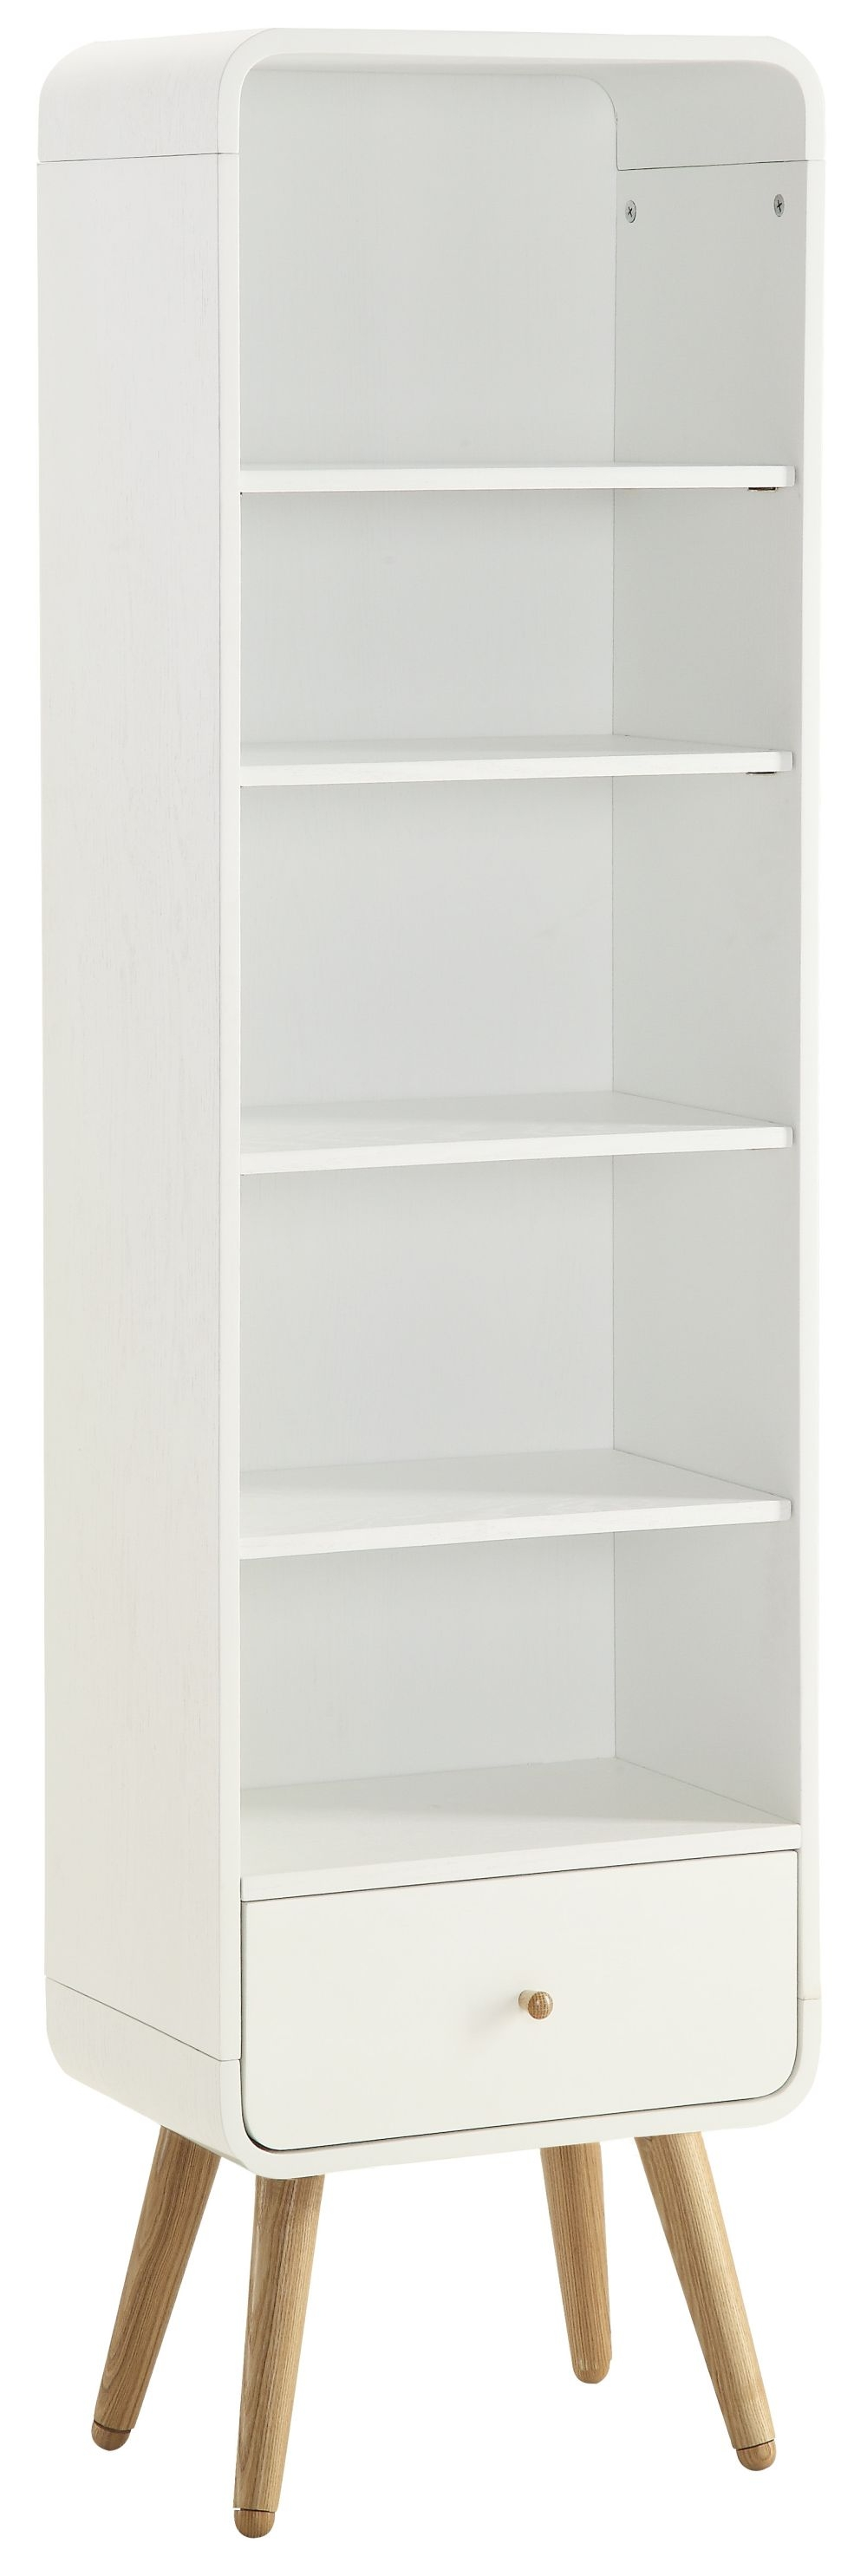 Jual White Bookcase - 1 Drawer 5 Shelves Tall PC703